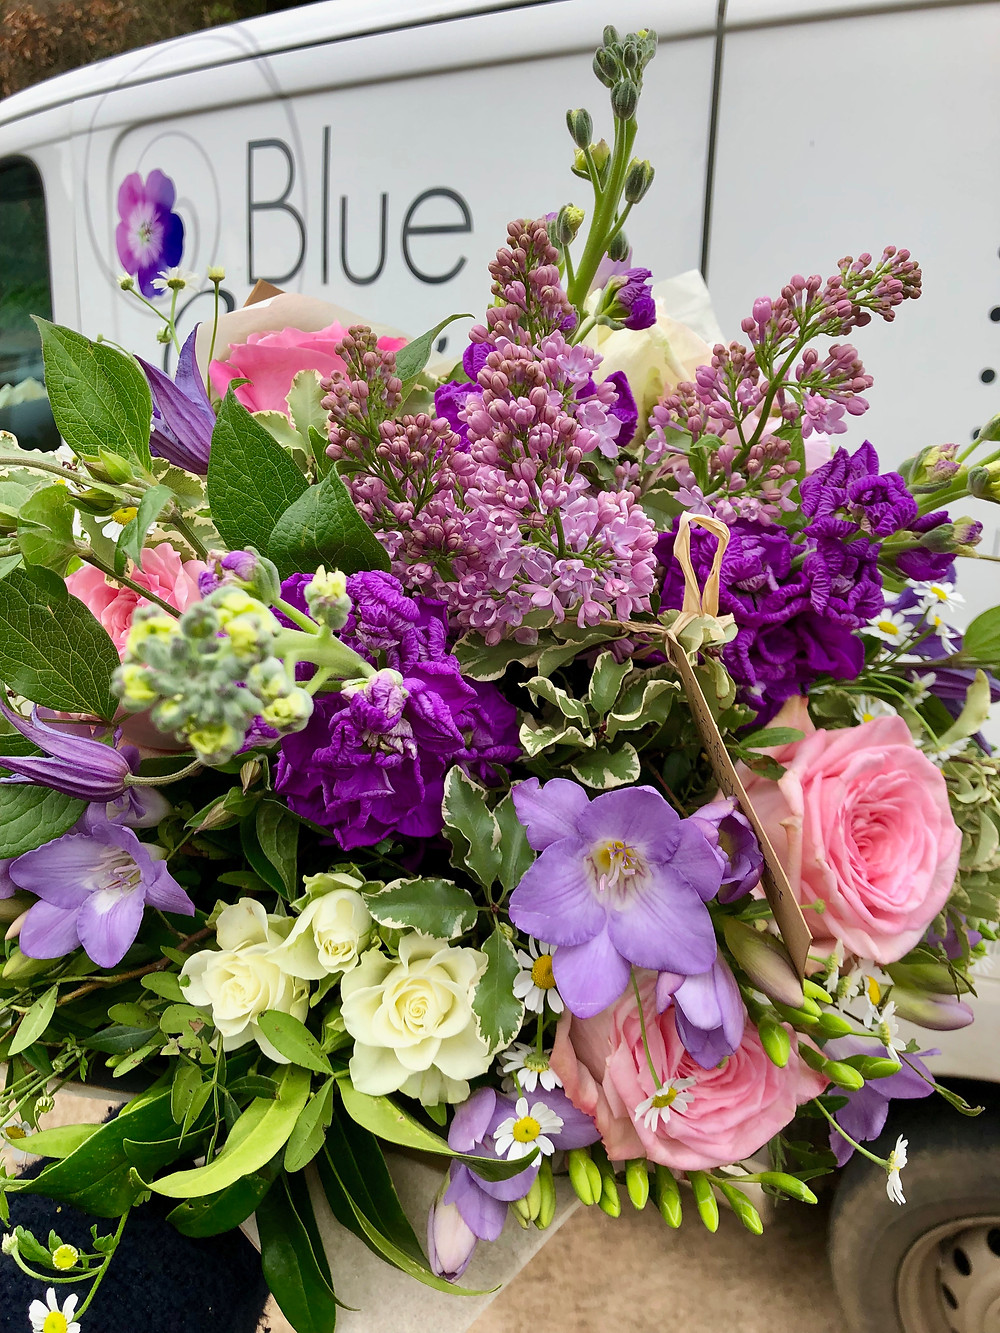 fresh flowers, hand-tied bouquet, lilac, roses, freesias, stocks, vehicle, van Blue Geranium logo